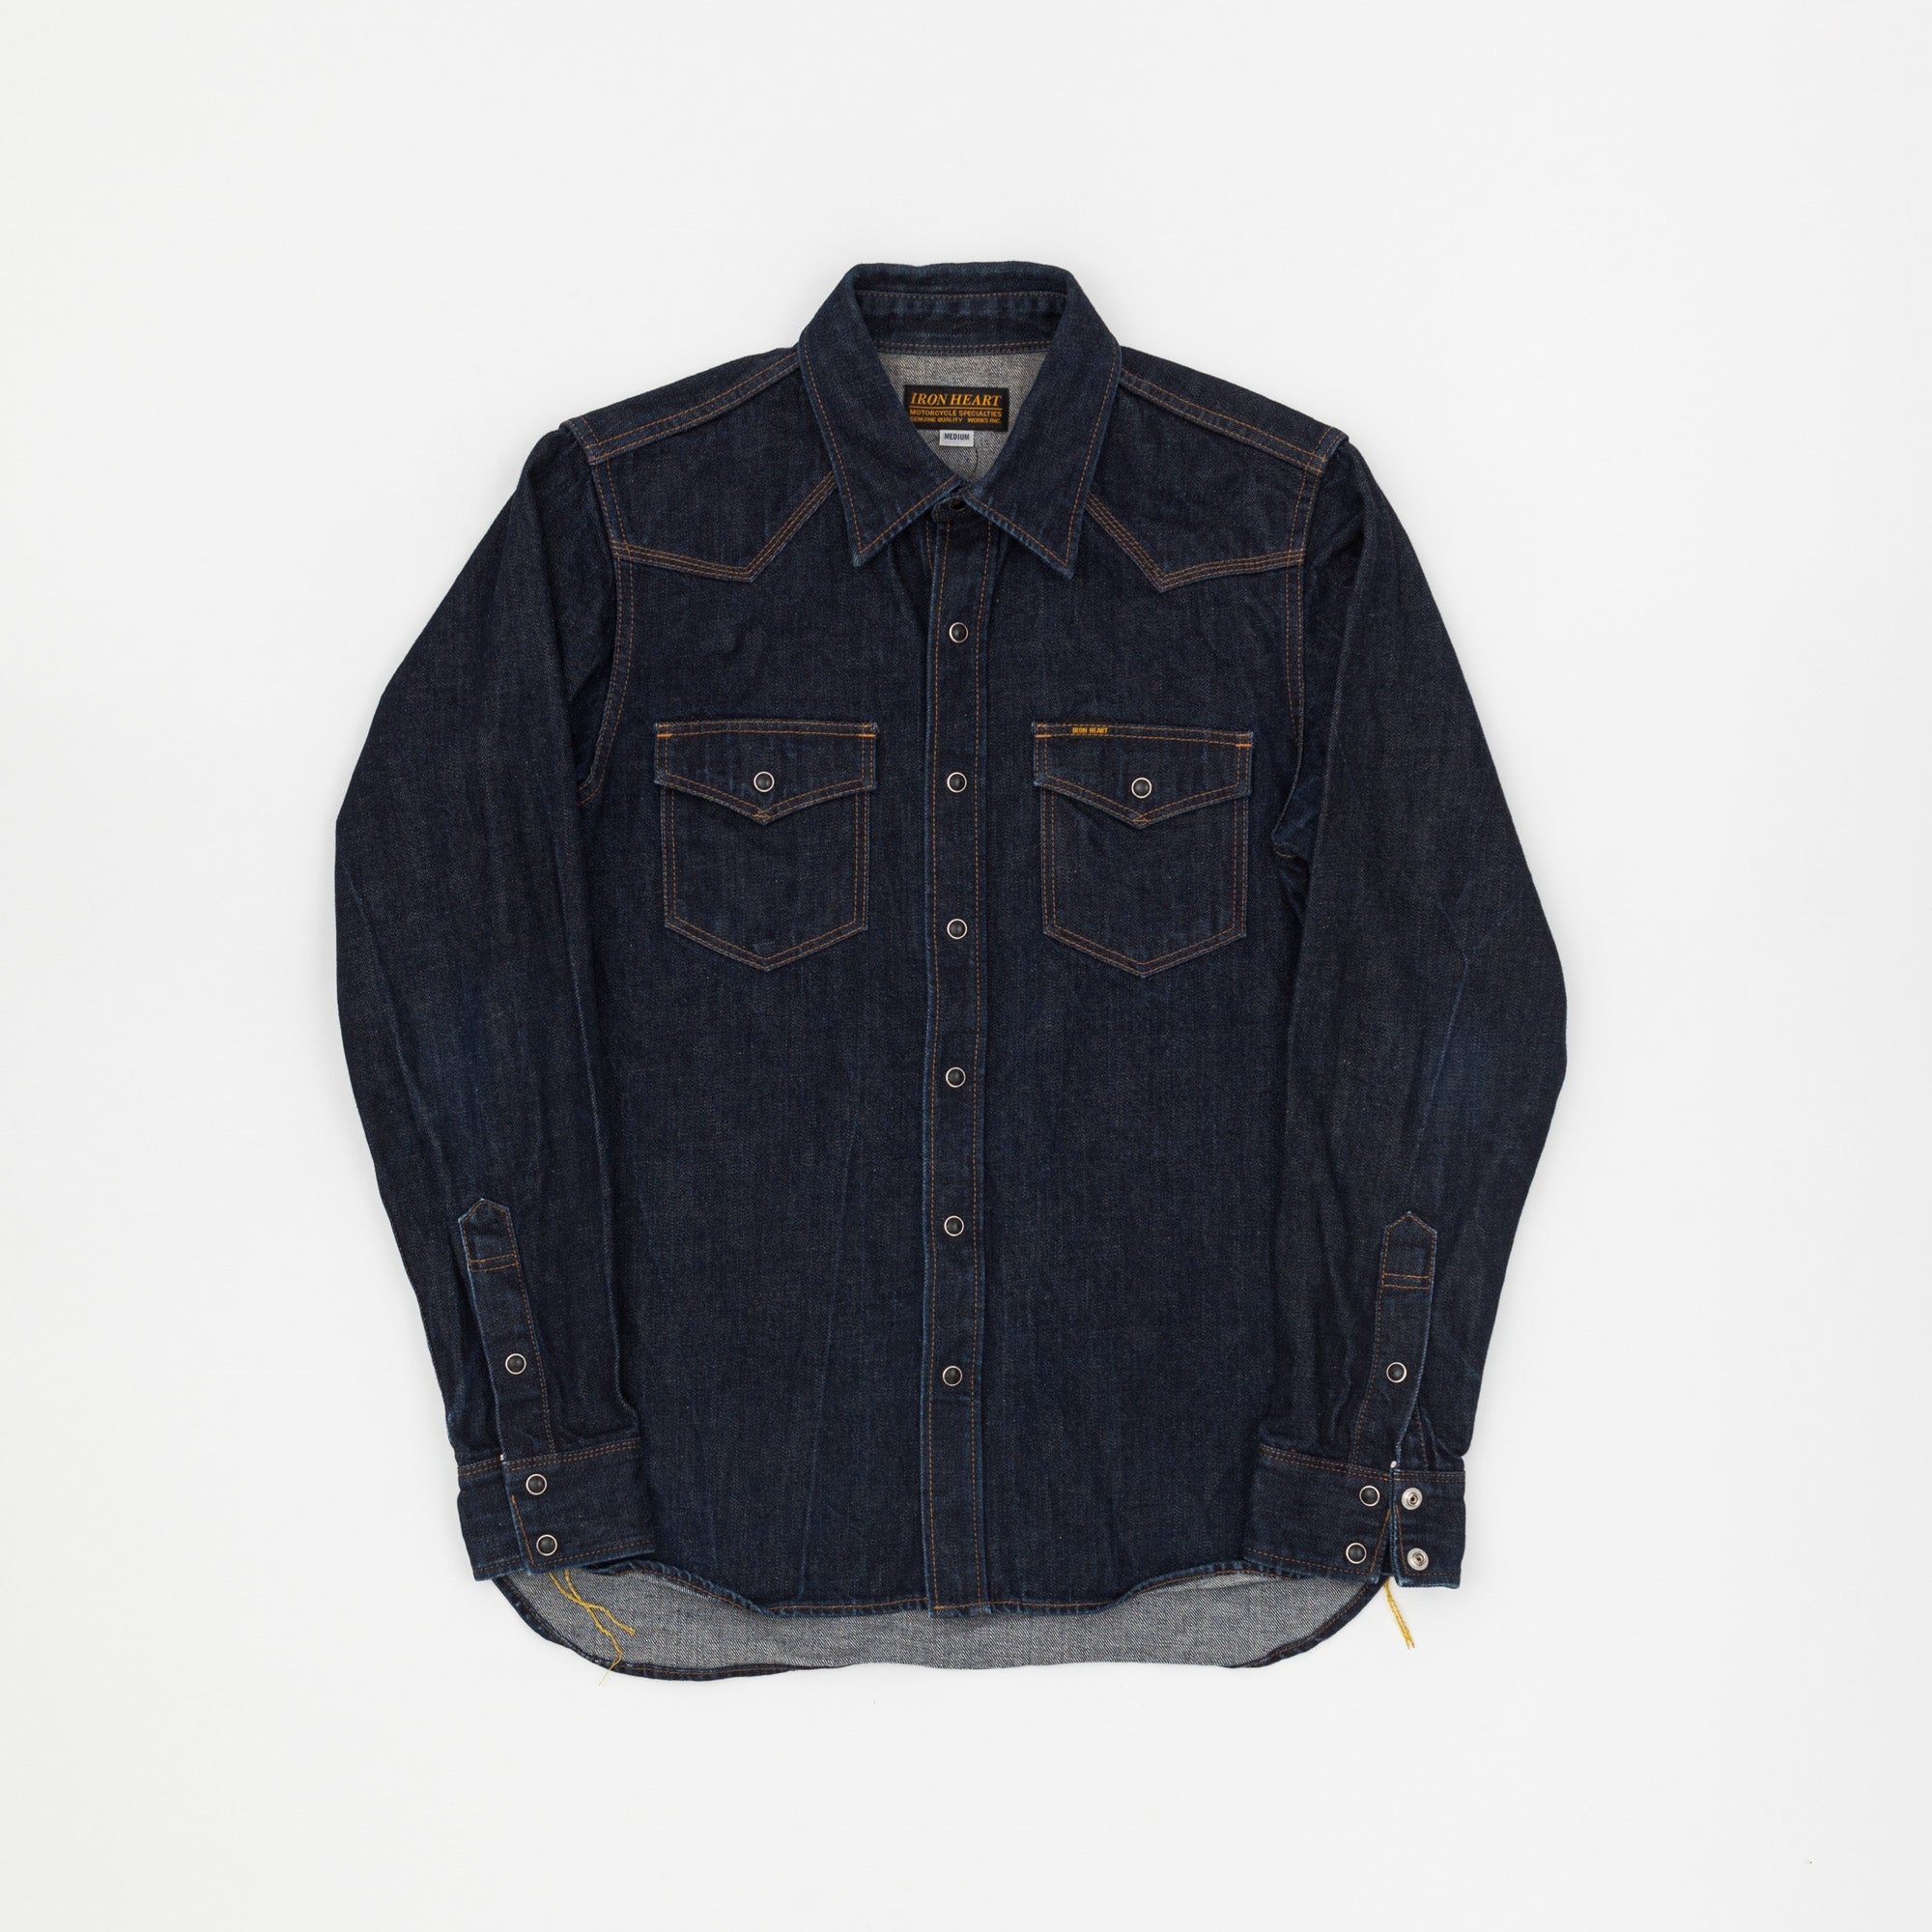 Iron Heart Denim Western Shirt